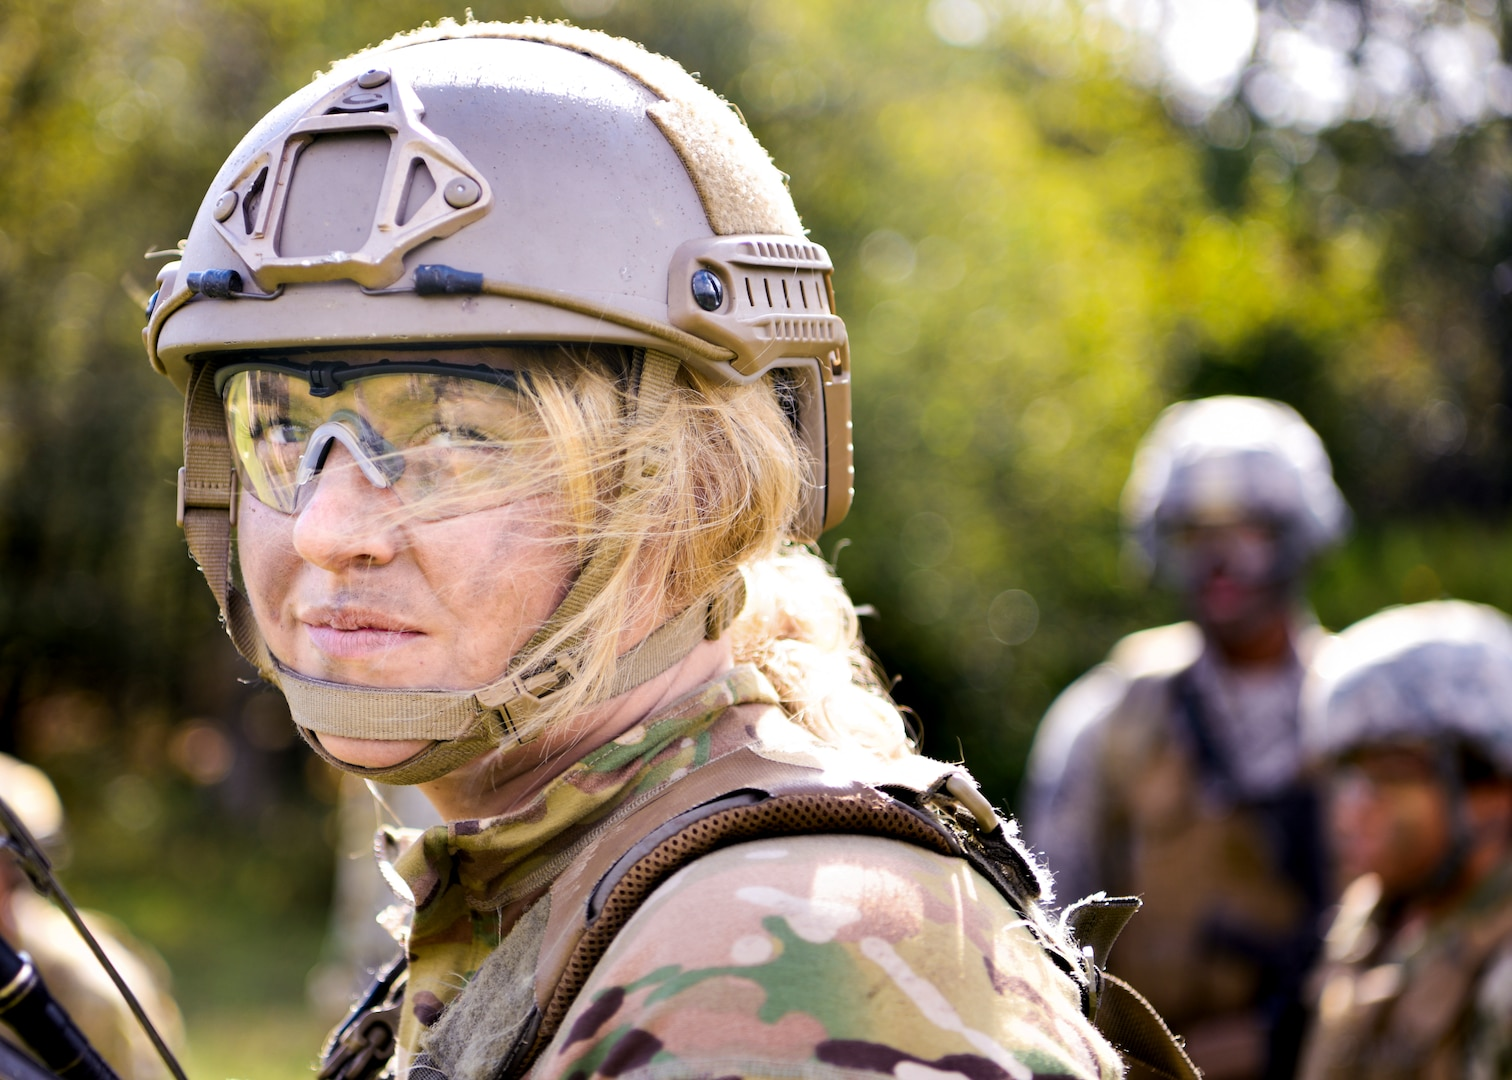 Airman participates in Security Forces Sustainment training at Baumholder, Germany, October 10, 2019 (U.S. Air Force/Deven Schultz)